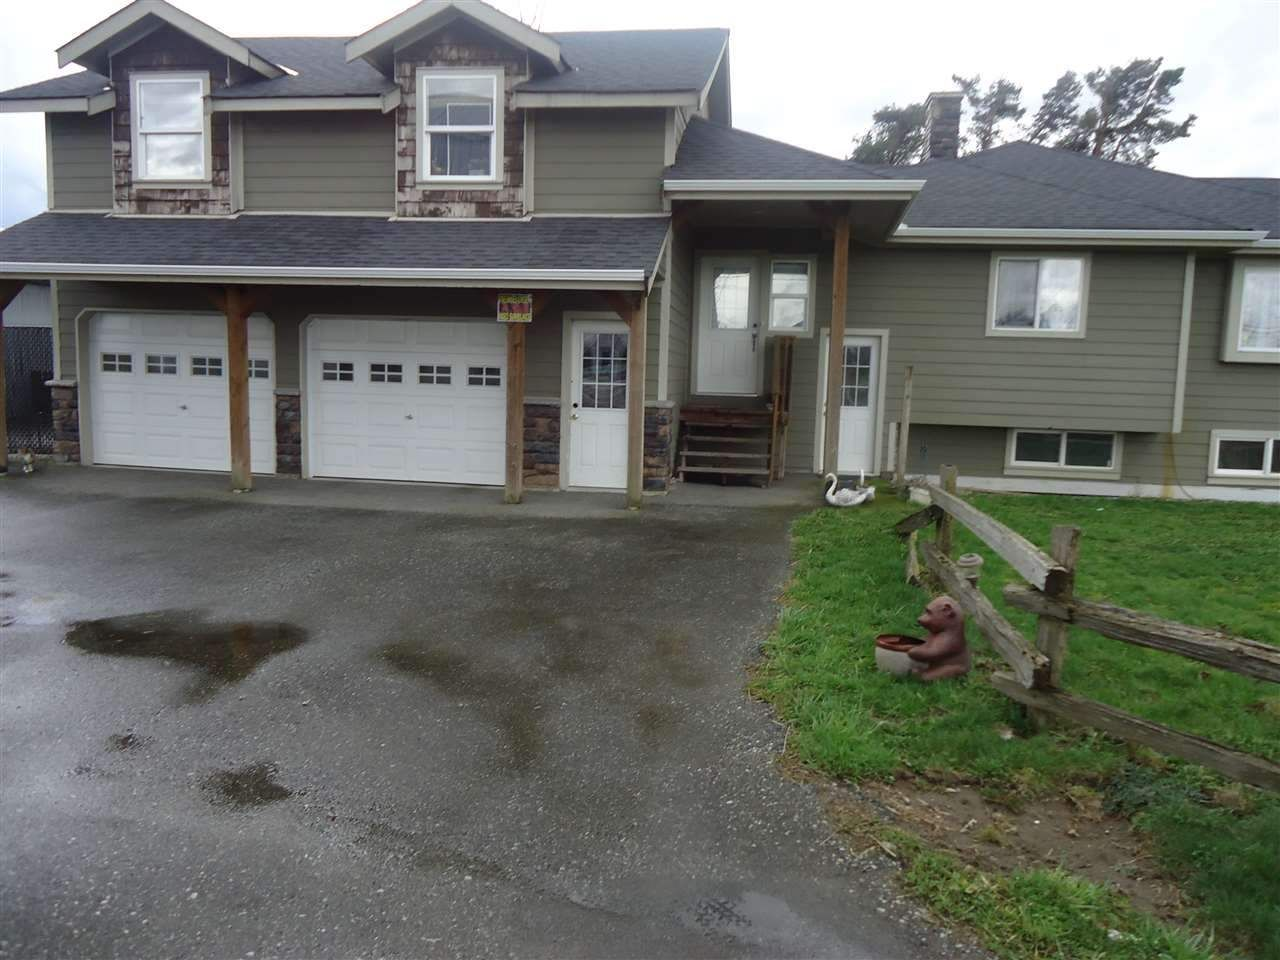 Main Photo: 42522 KEITH WILSON Road in Chilliwack: Greendale Chilliwack House for sale (Sardis)  : MLS®# R2544012